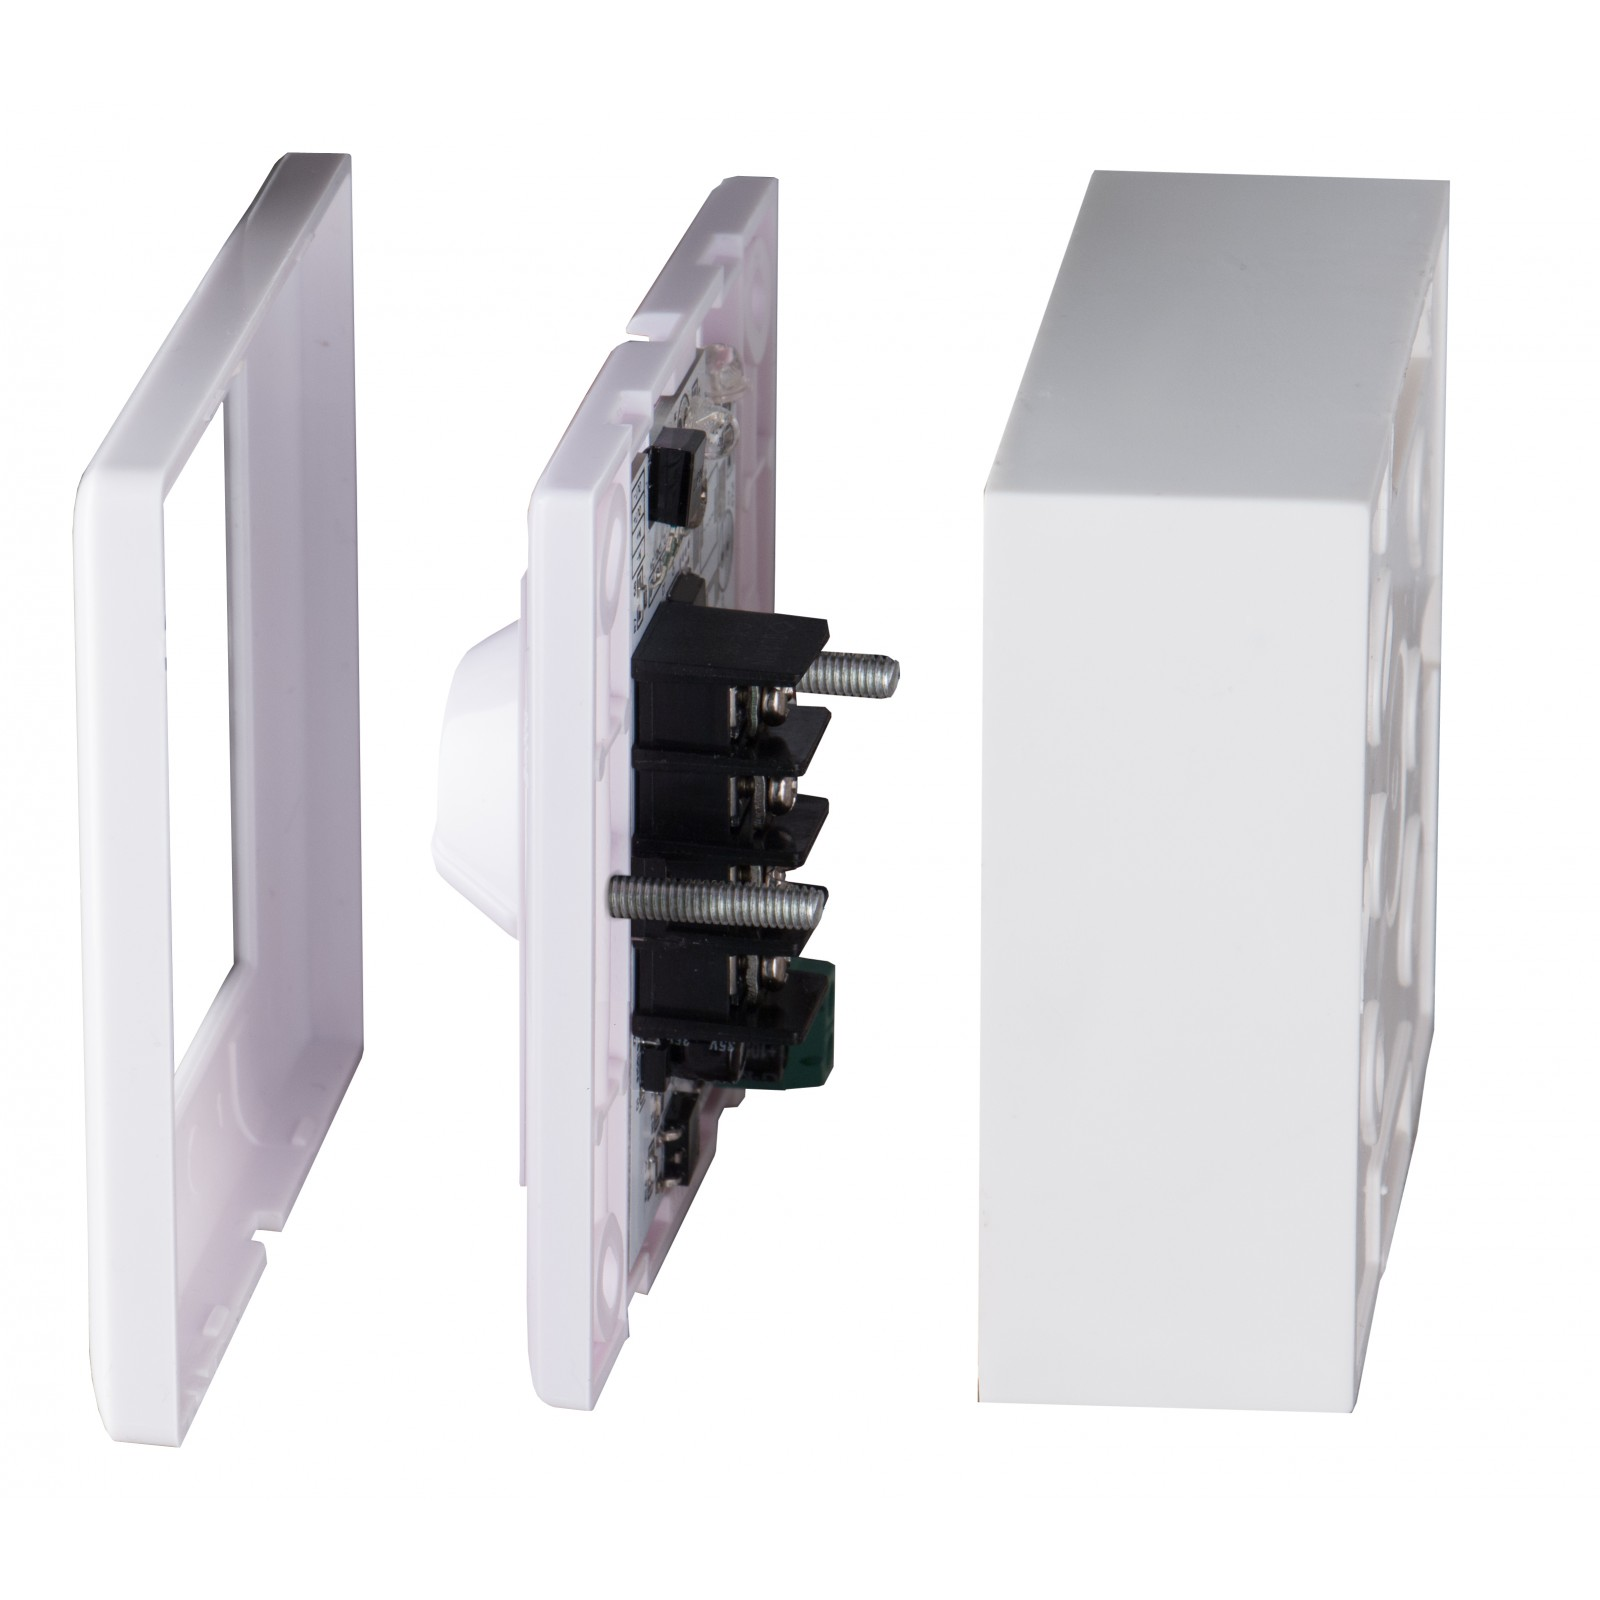 led-1ch-dim-wall-connec